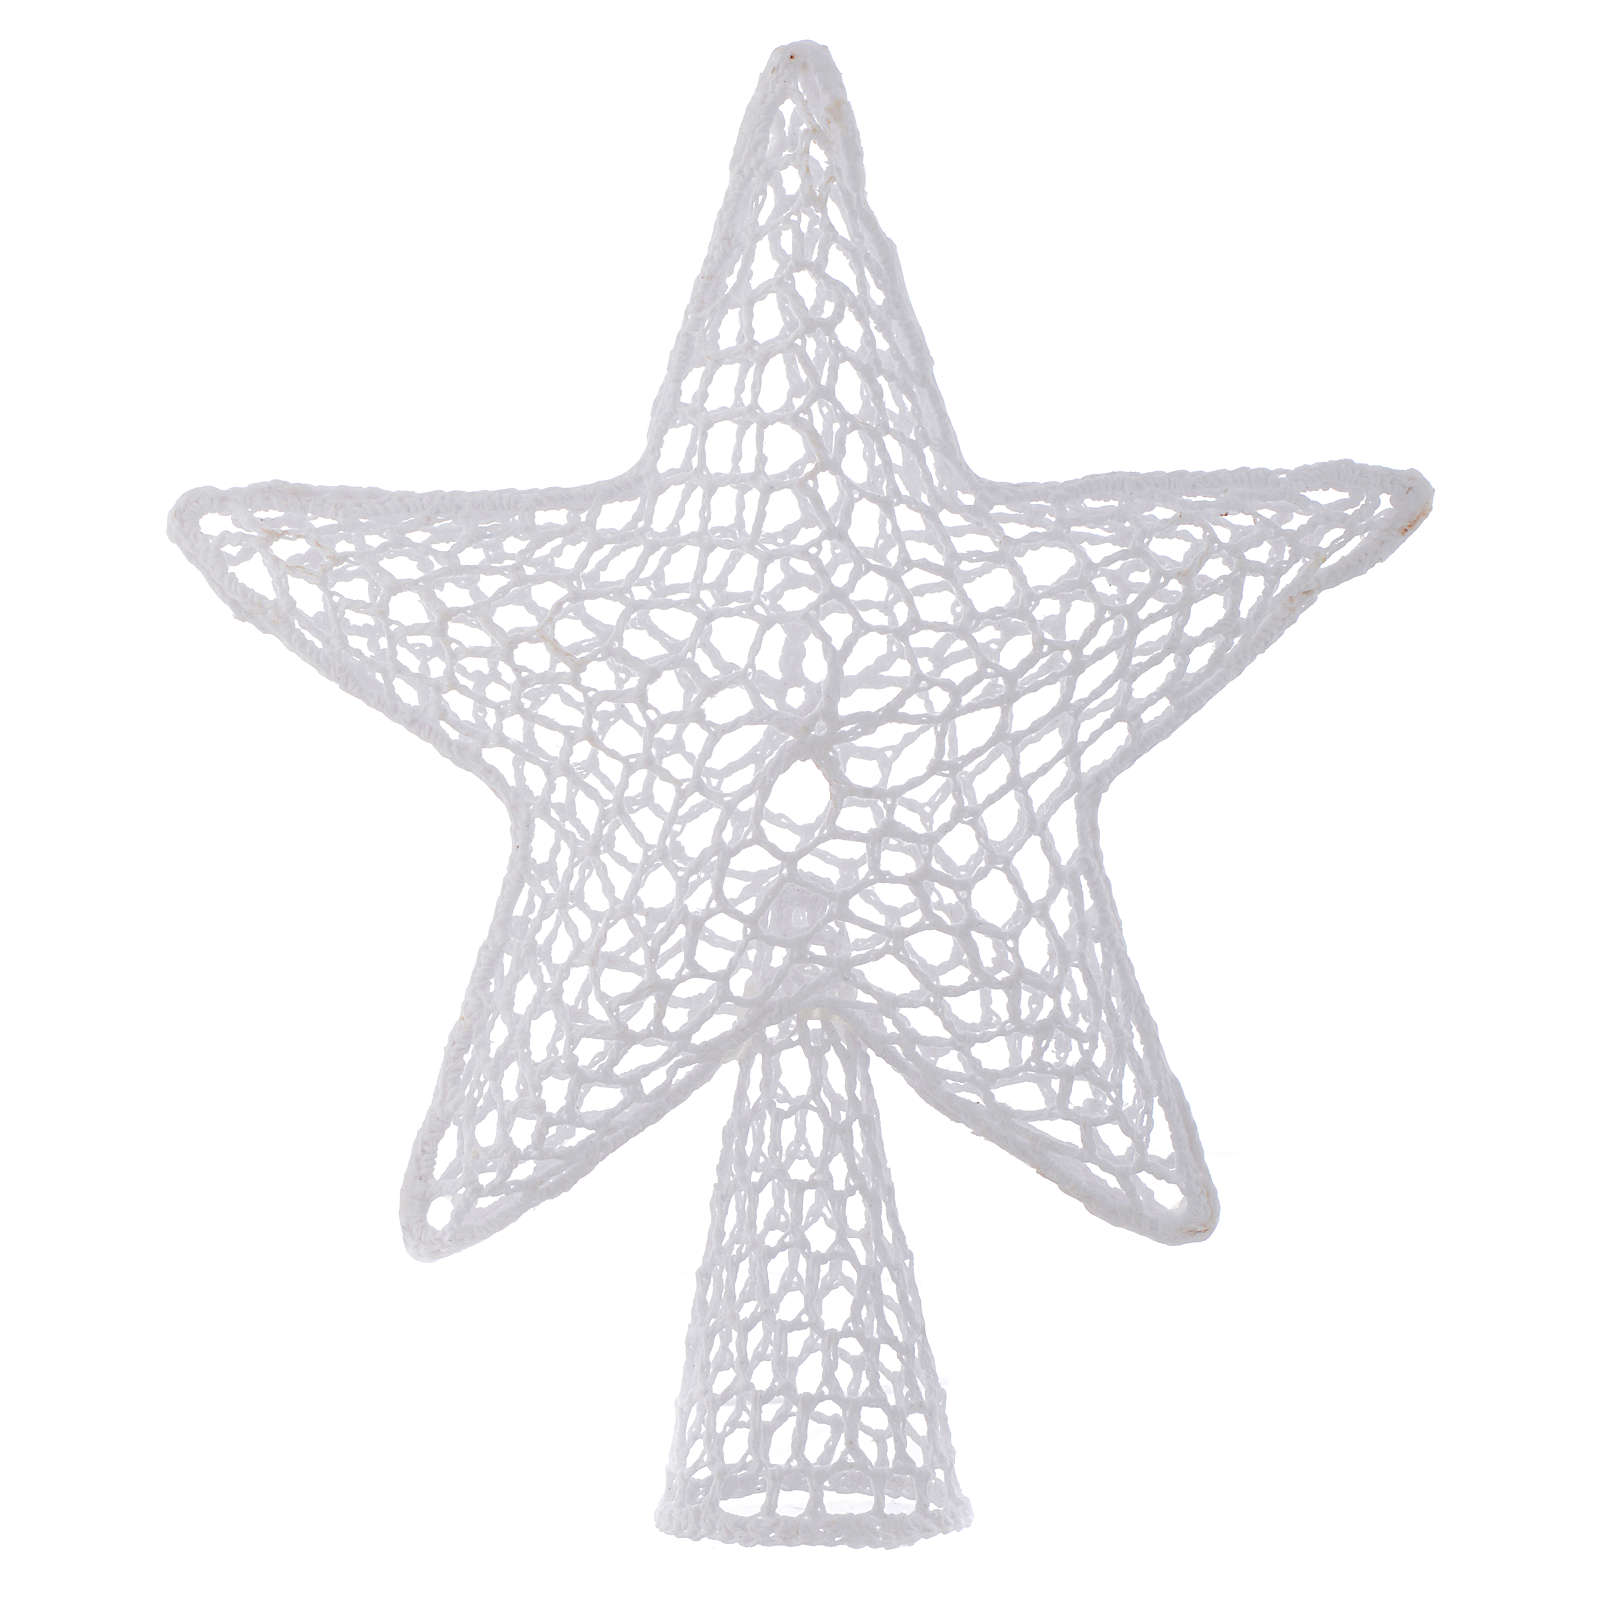 Topper for Christmas tree with embroidered star, white 4